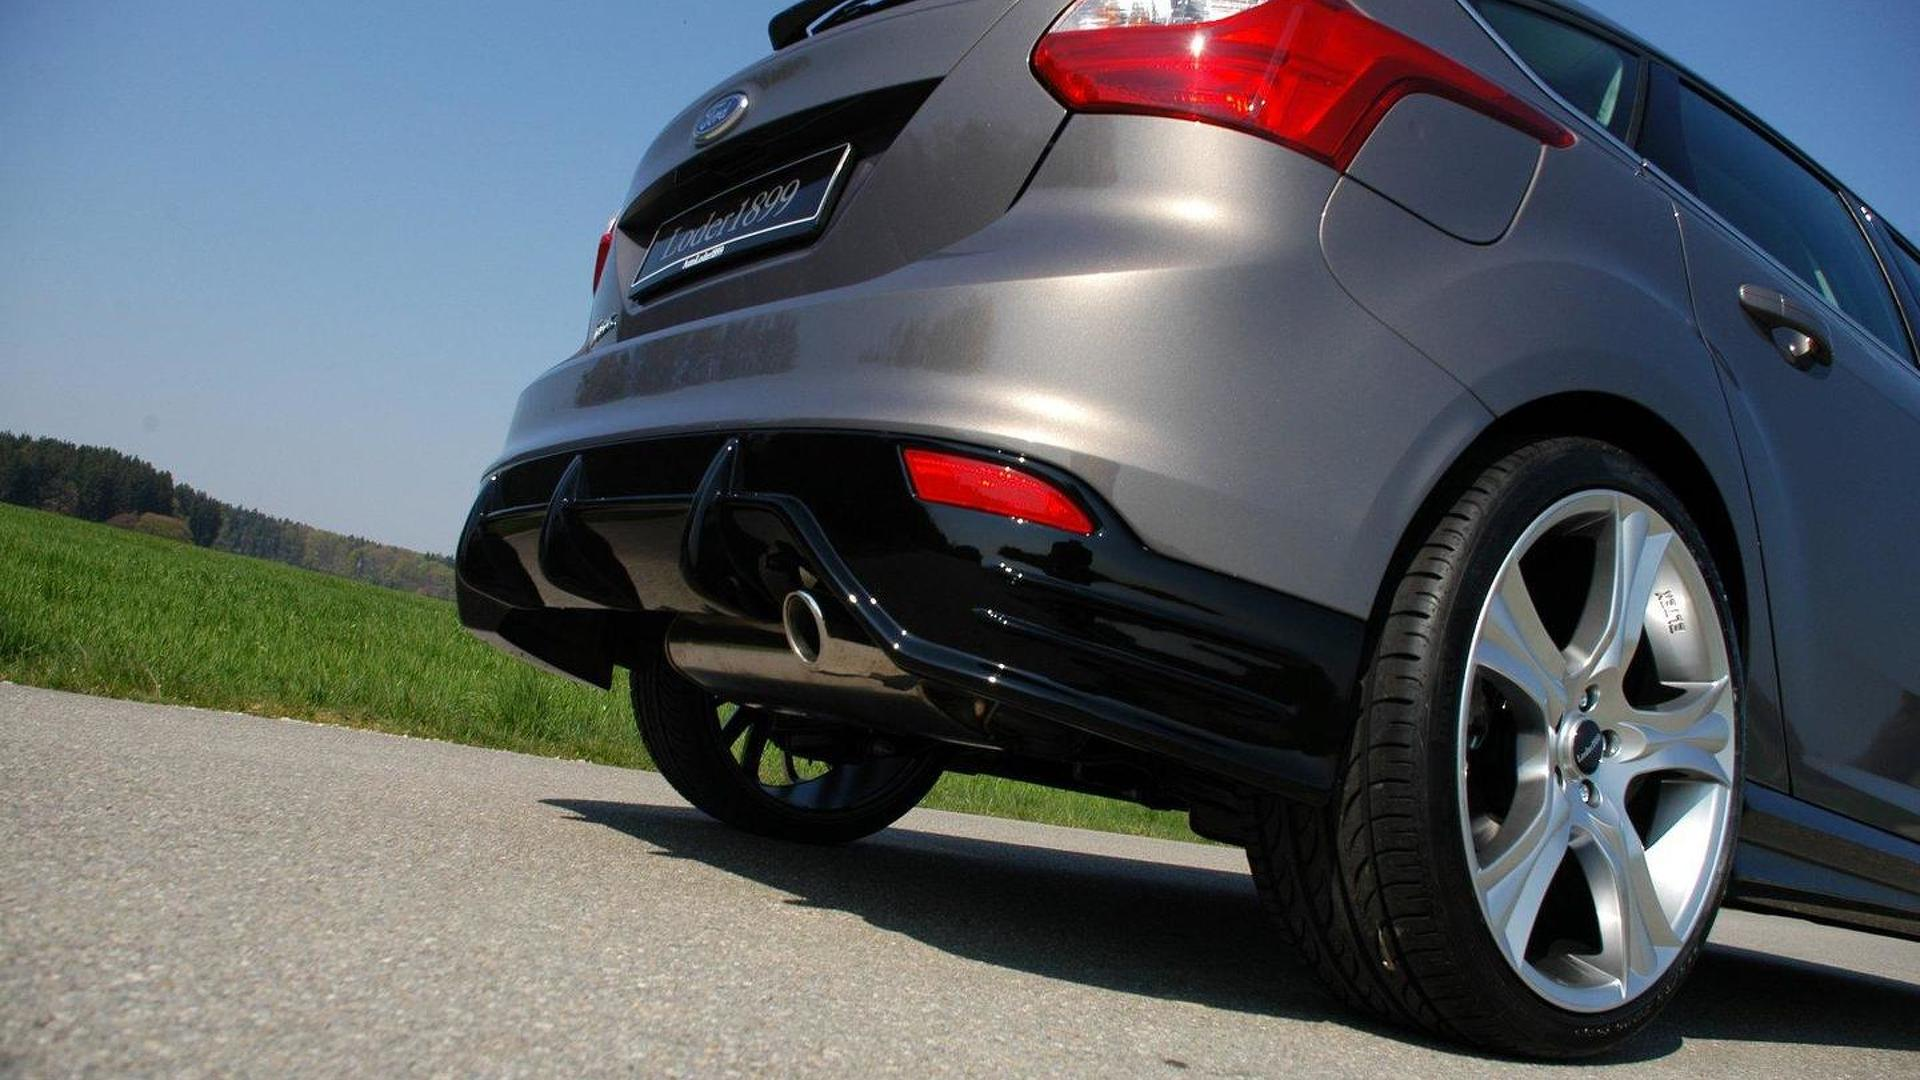 2012 ford focus tuned by loder1899